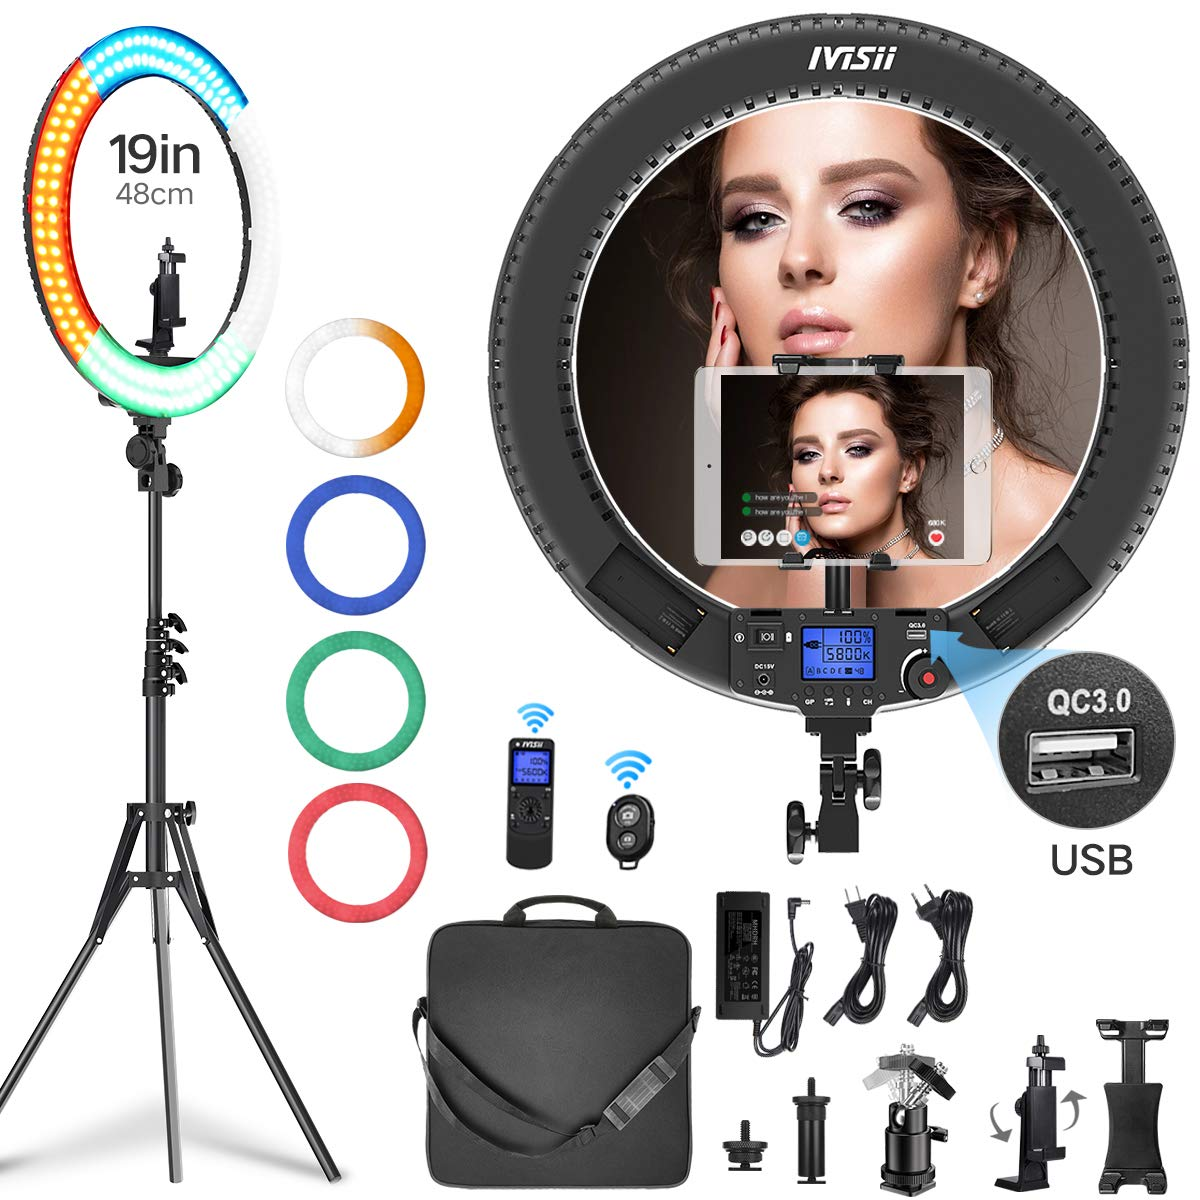 Ring Light with Remote Controller and Stand ipad Holder,Makeup LED Ring Lights 60W Bi-Color 3000K-5800K CRI≥97 & TLCI ≥99 with 4 Color Soft Filters for YouTube, Facebook Live,Twitch and Blogging by IVISII